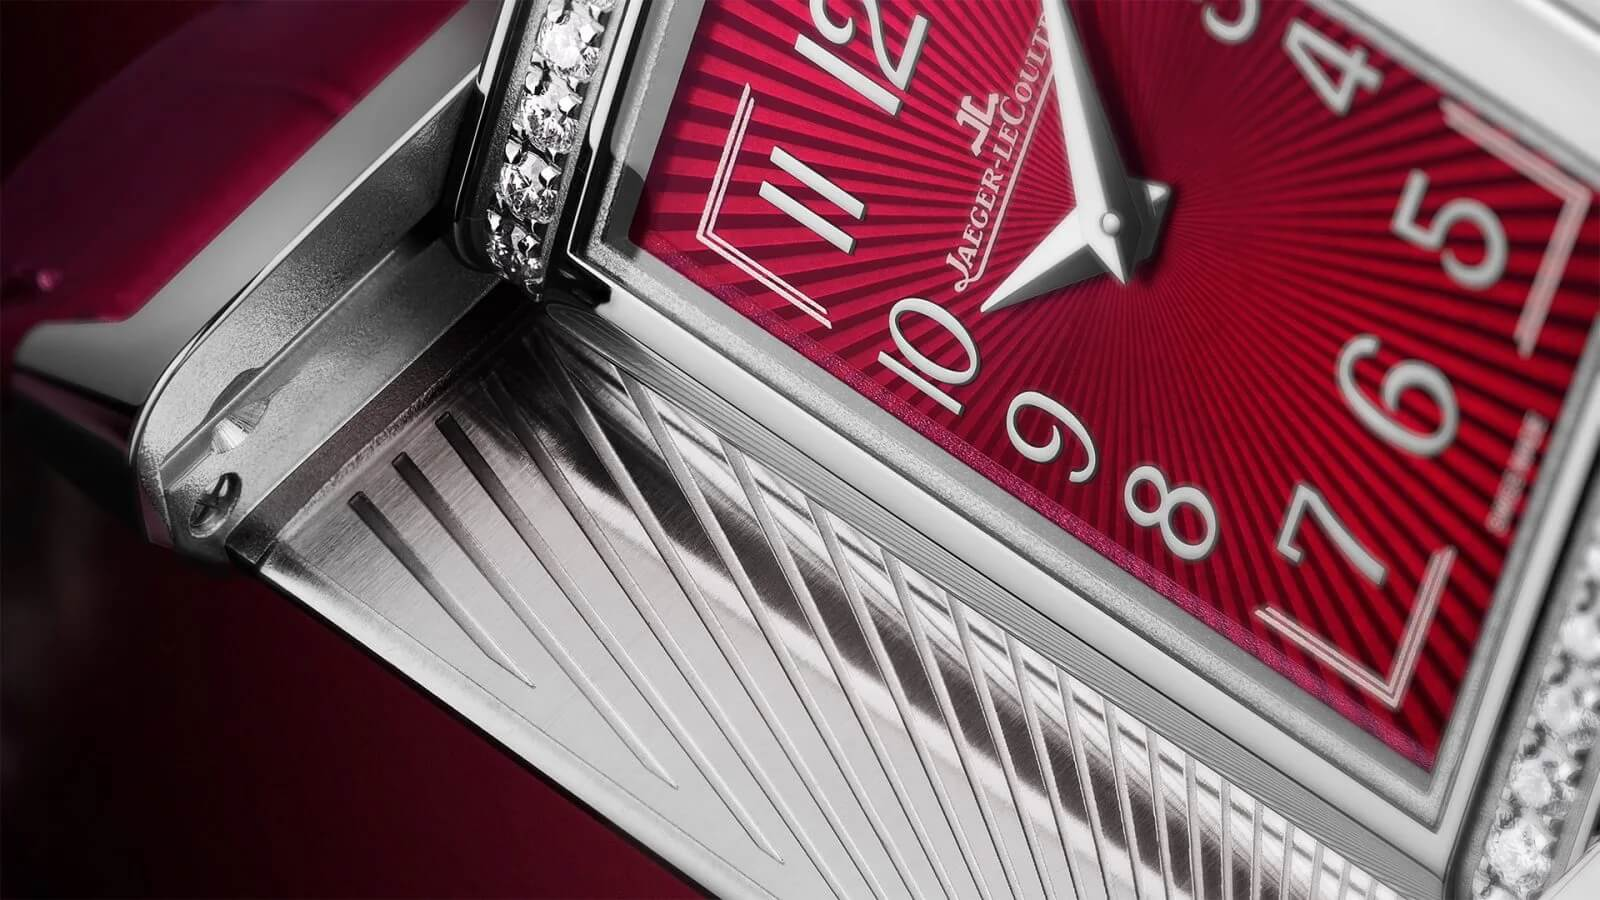 jaeger-lecoultre_reverso-one_gallery_image2-1600x900-jpg